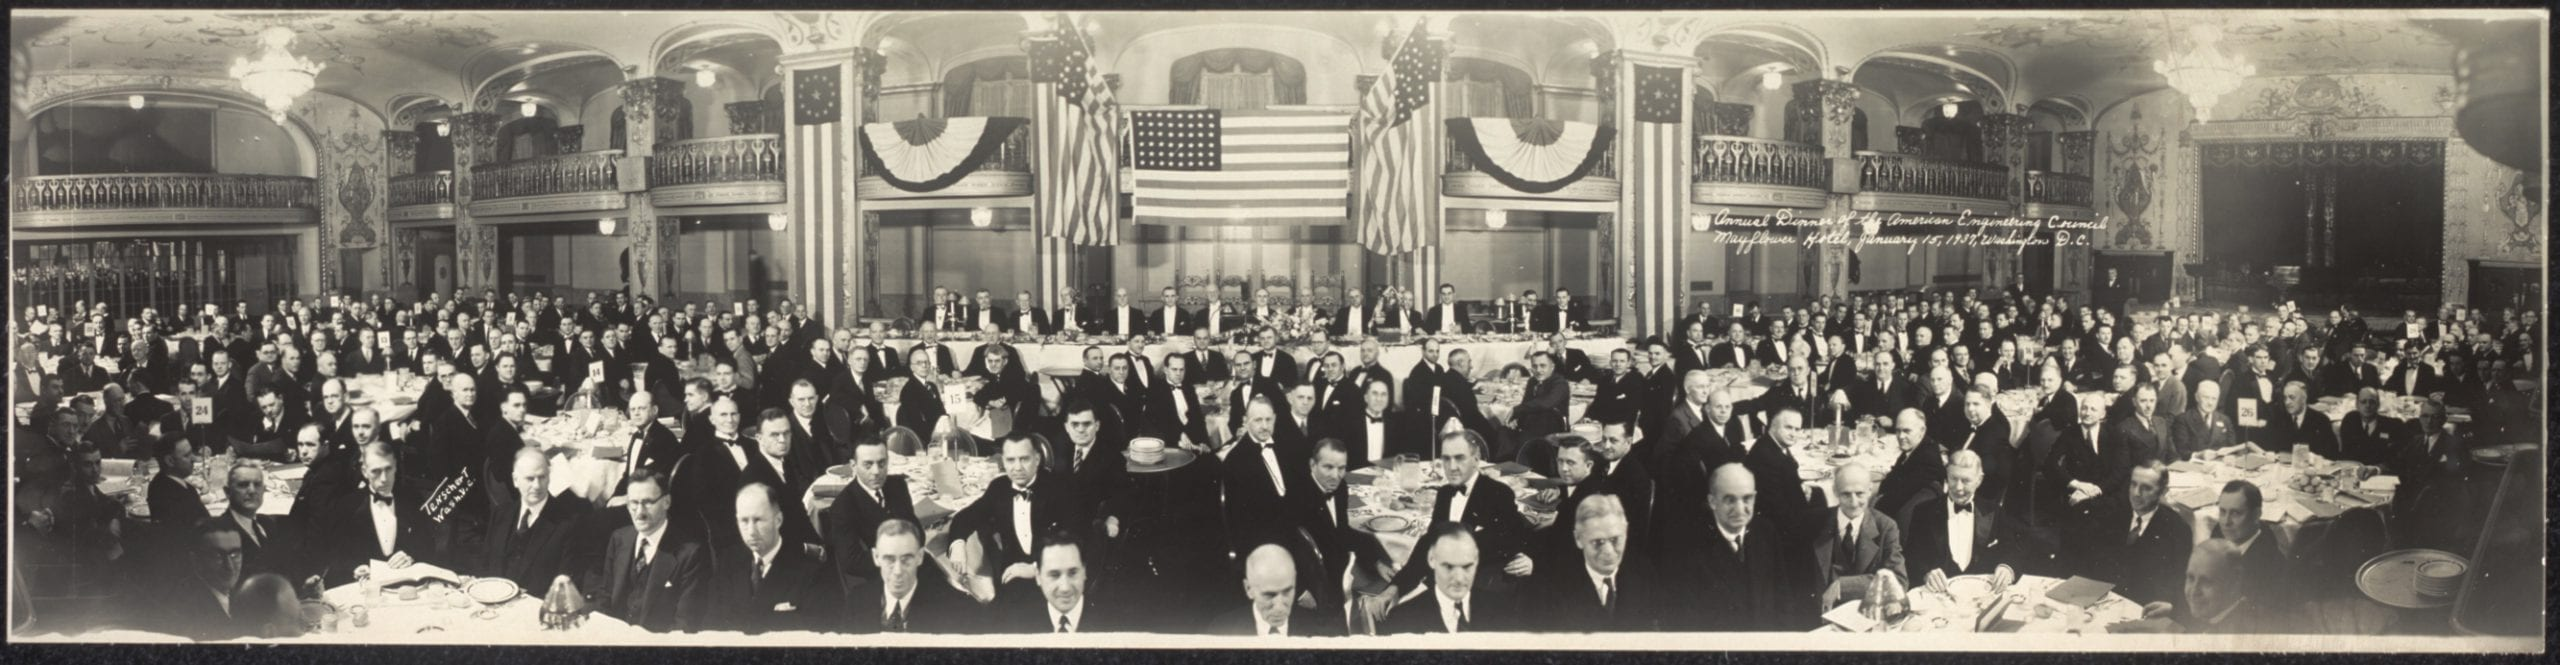 annual dinner of the American Engineering Council (1937)